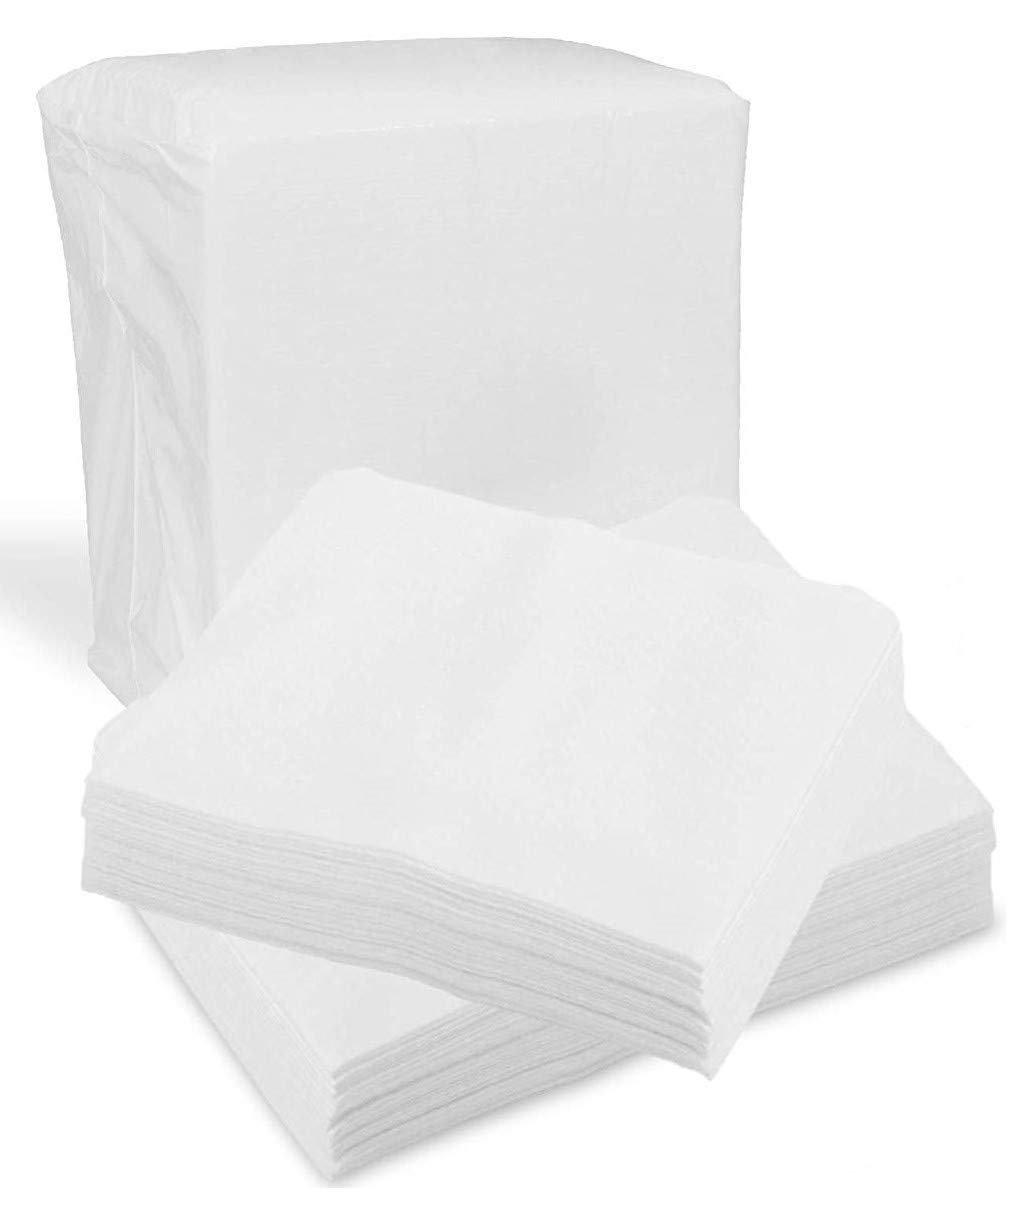 """Disposable Dry Wipes, 200 Pack – Ultra Soft Non-Moistened Cleansing Cloths for Adults, Incontinence, Baby Care, Makeup Removal – 9.5"""" x 13.5"""" - Hospital Grade, Durable – by ProHeal"""